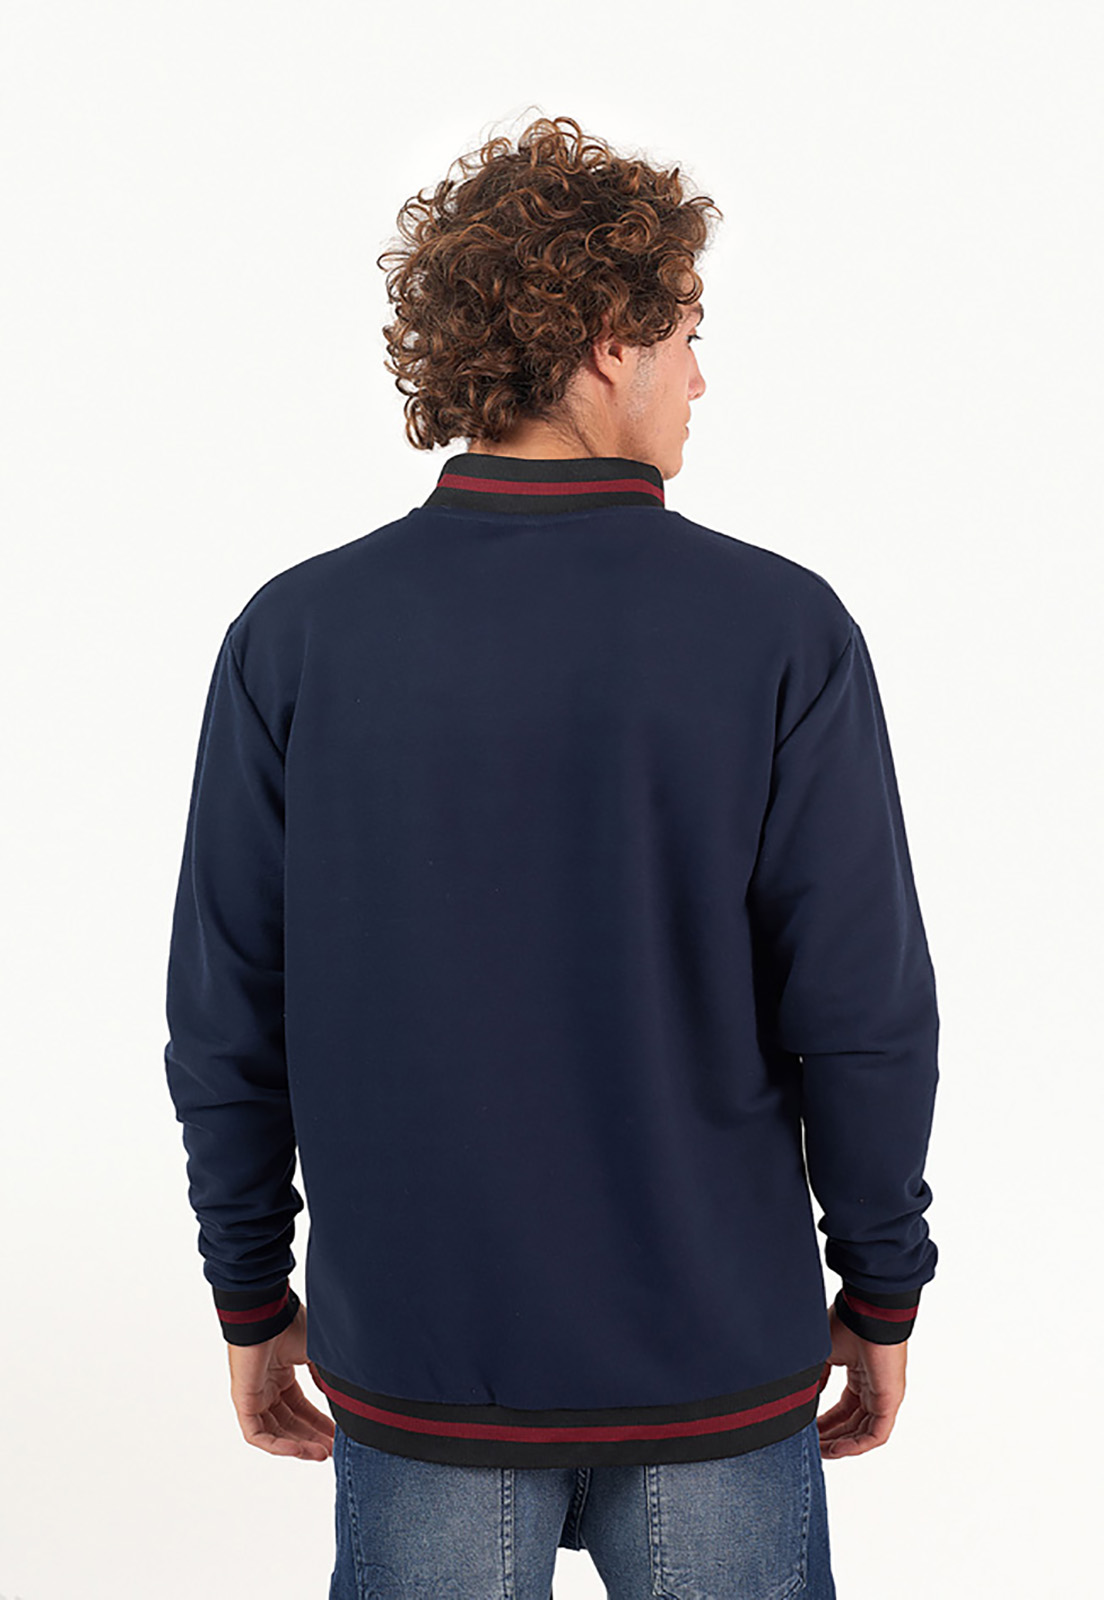 Casaco Turtleneck melty  - melty surf & Co.